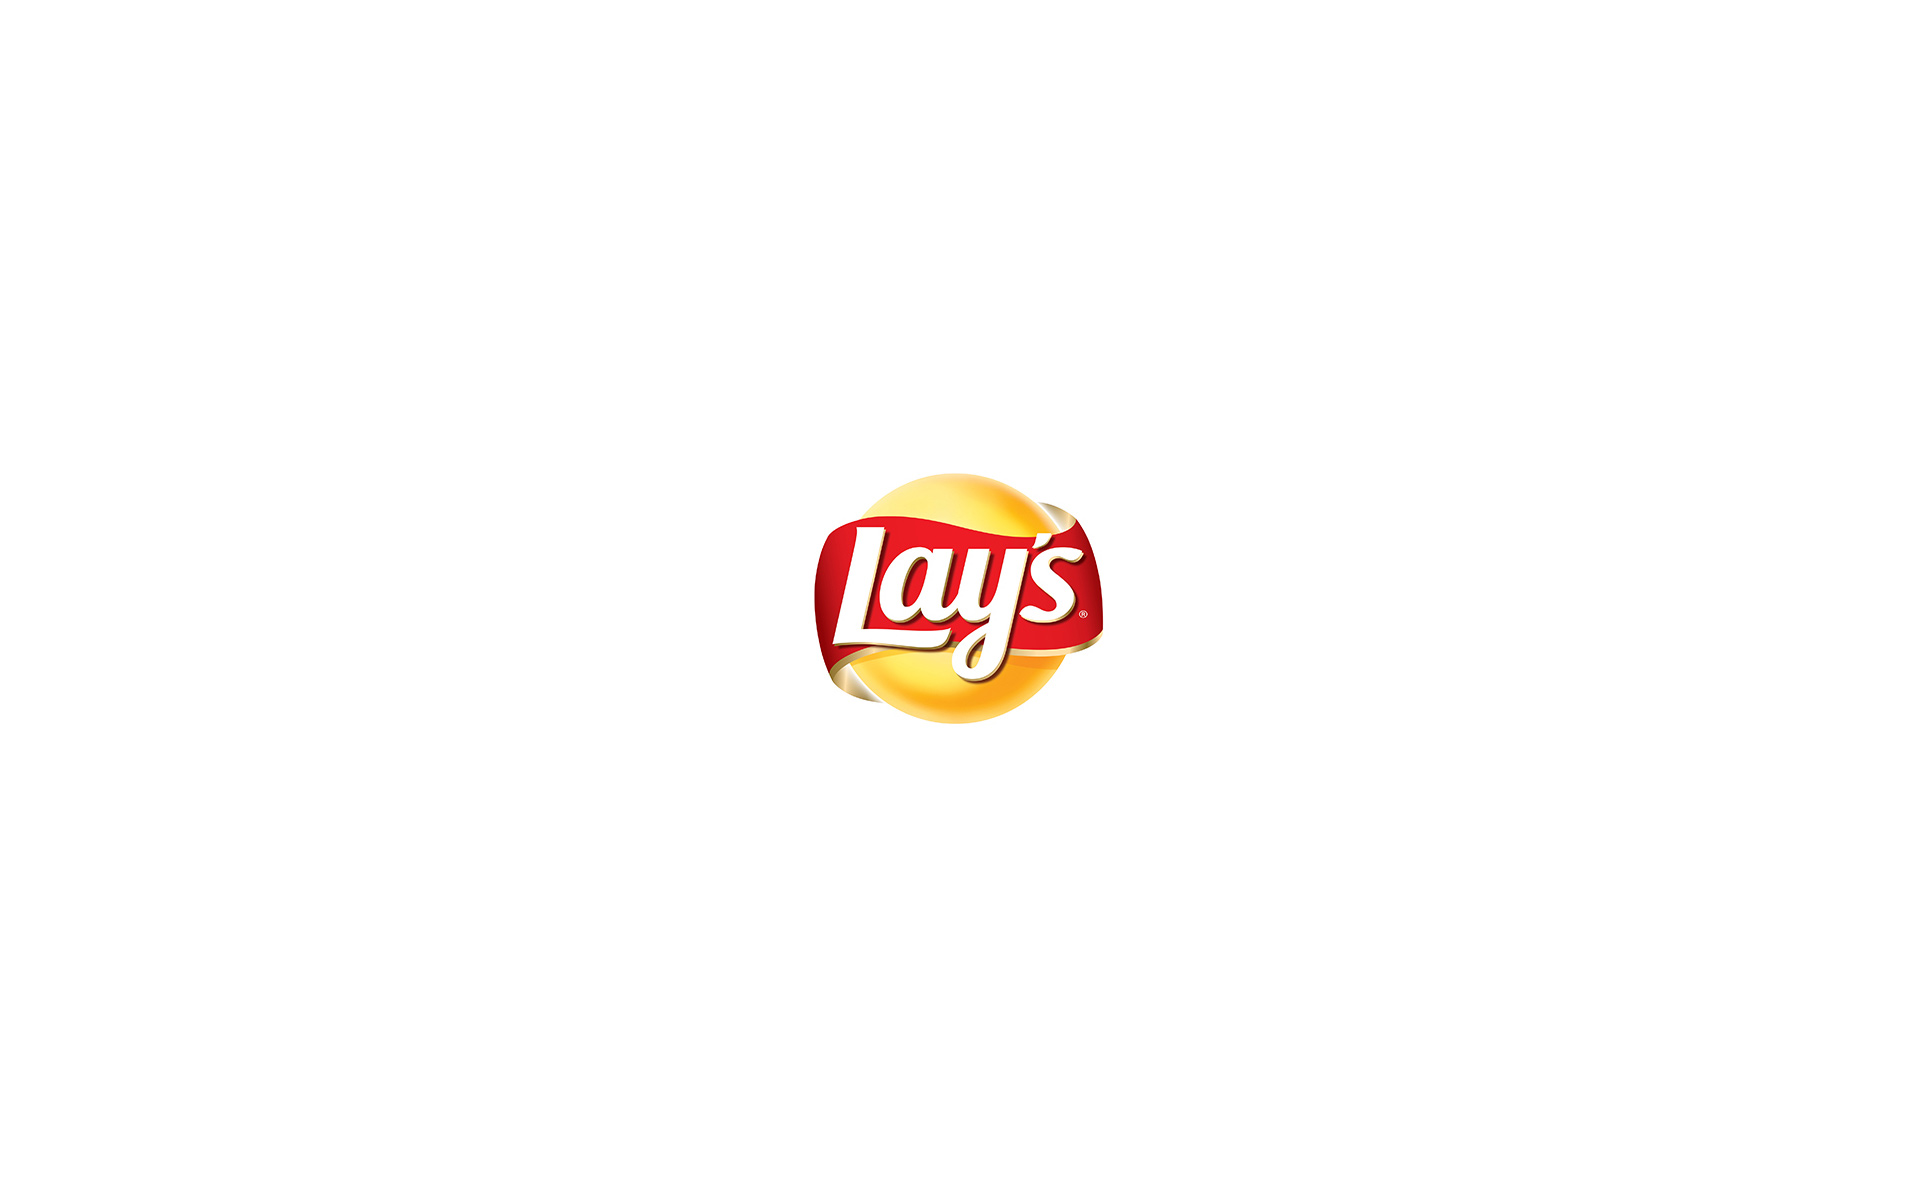 Lay's advertising campaign.